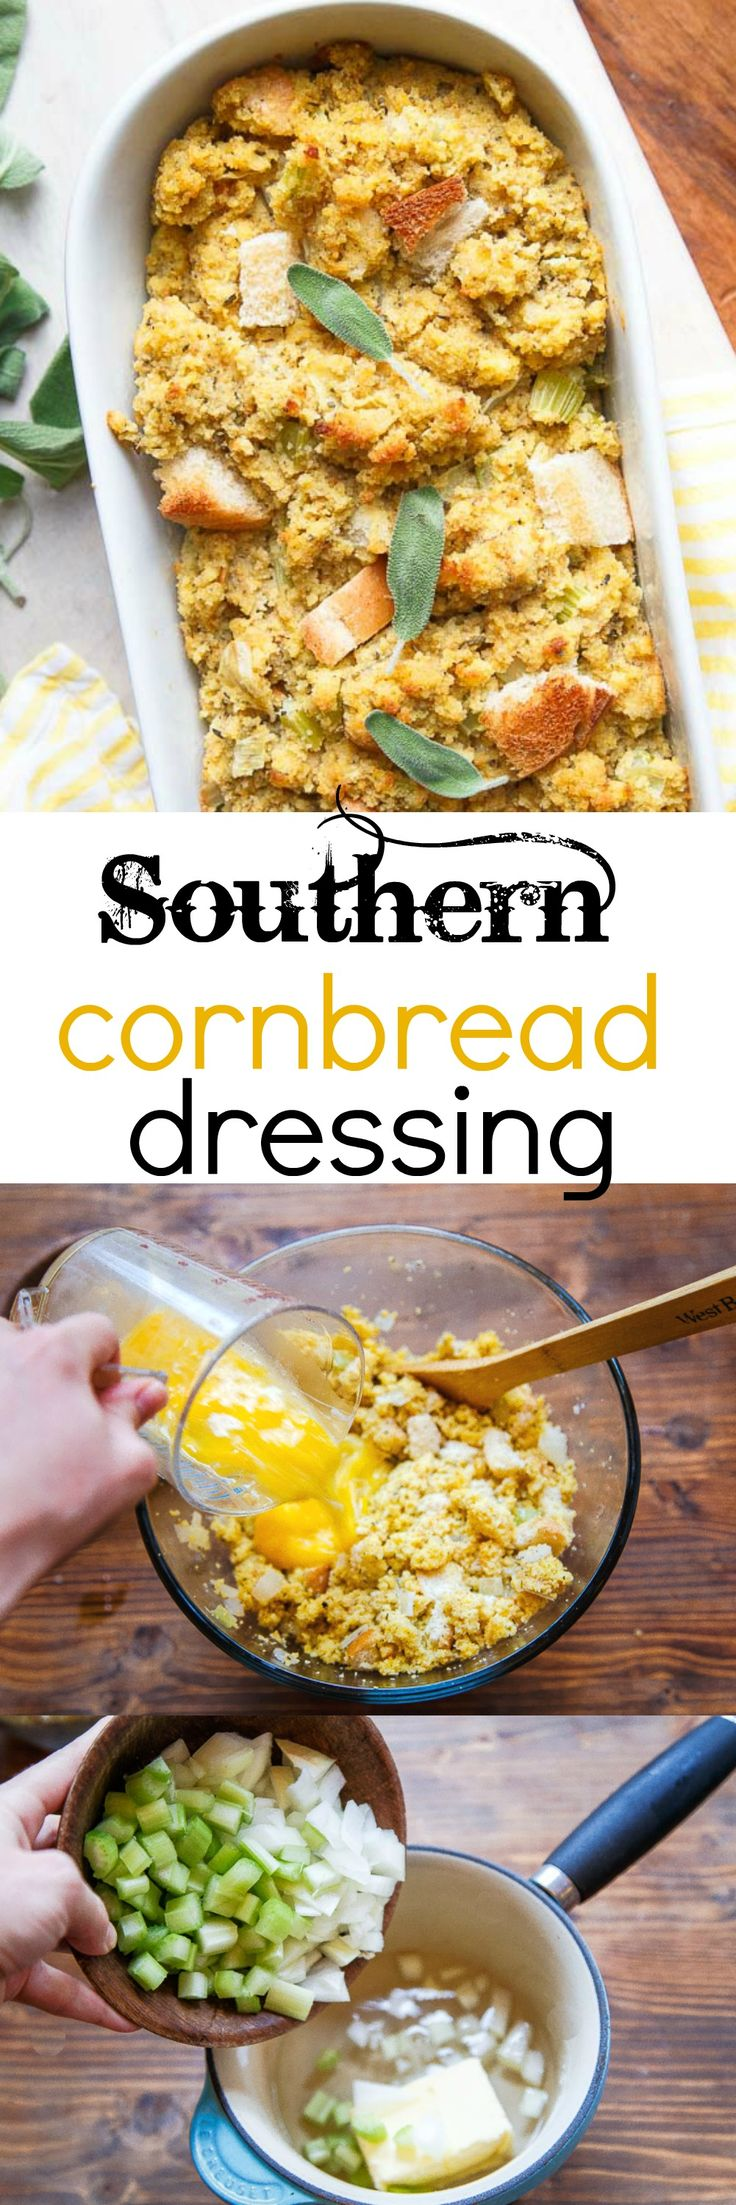 The best recipe for stuffing ever. My Mama's recipe for Southern cornbread dressing. With step-by-step photos!